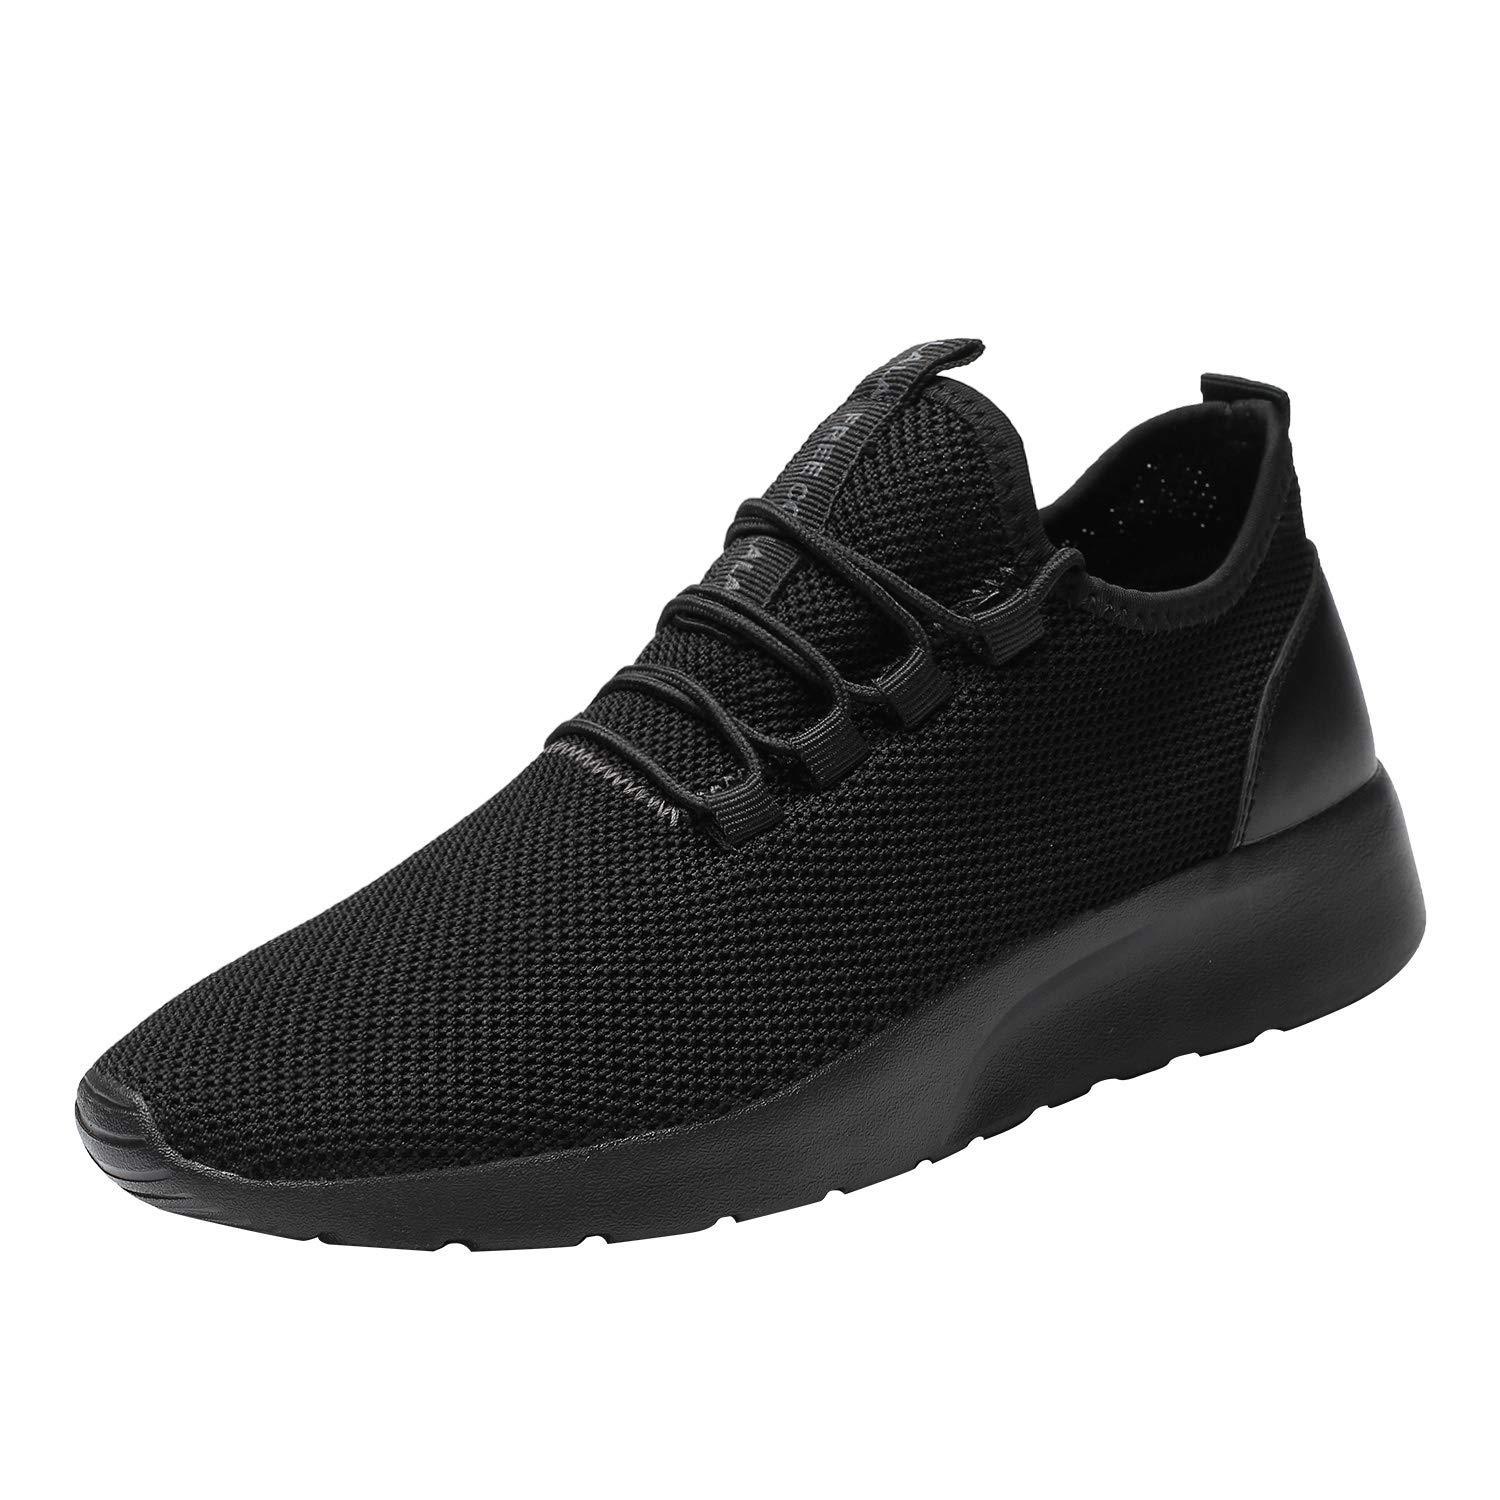 Cheap Sport Chek Volleyball Shoes, find